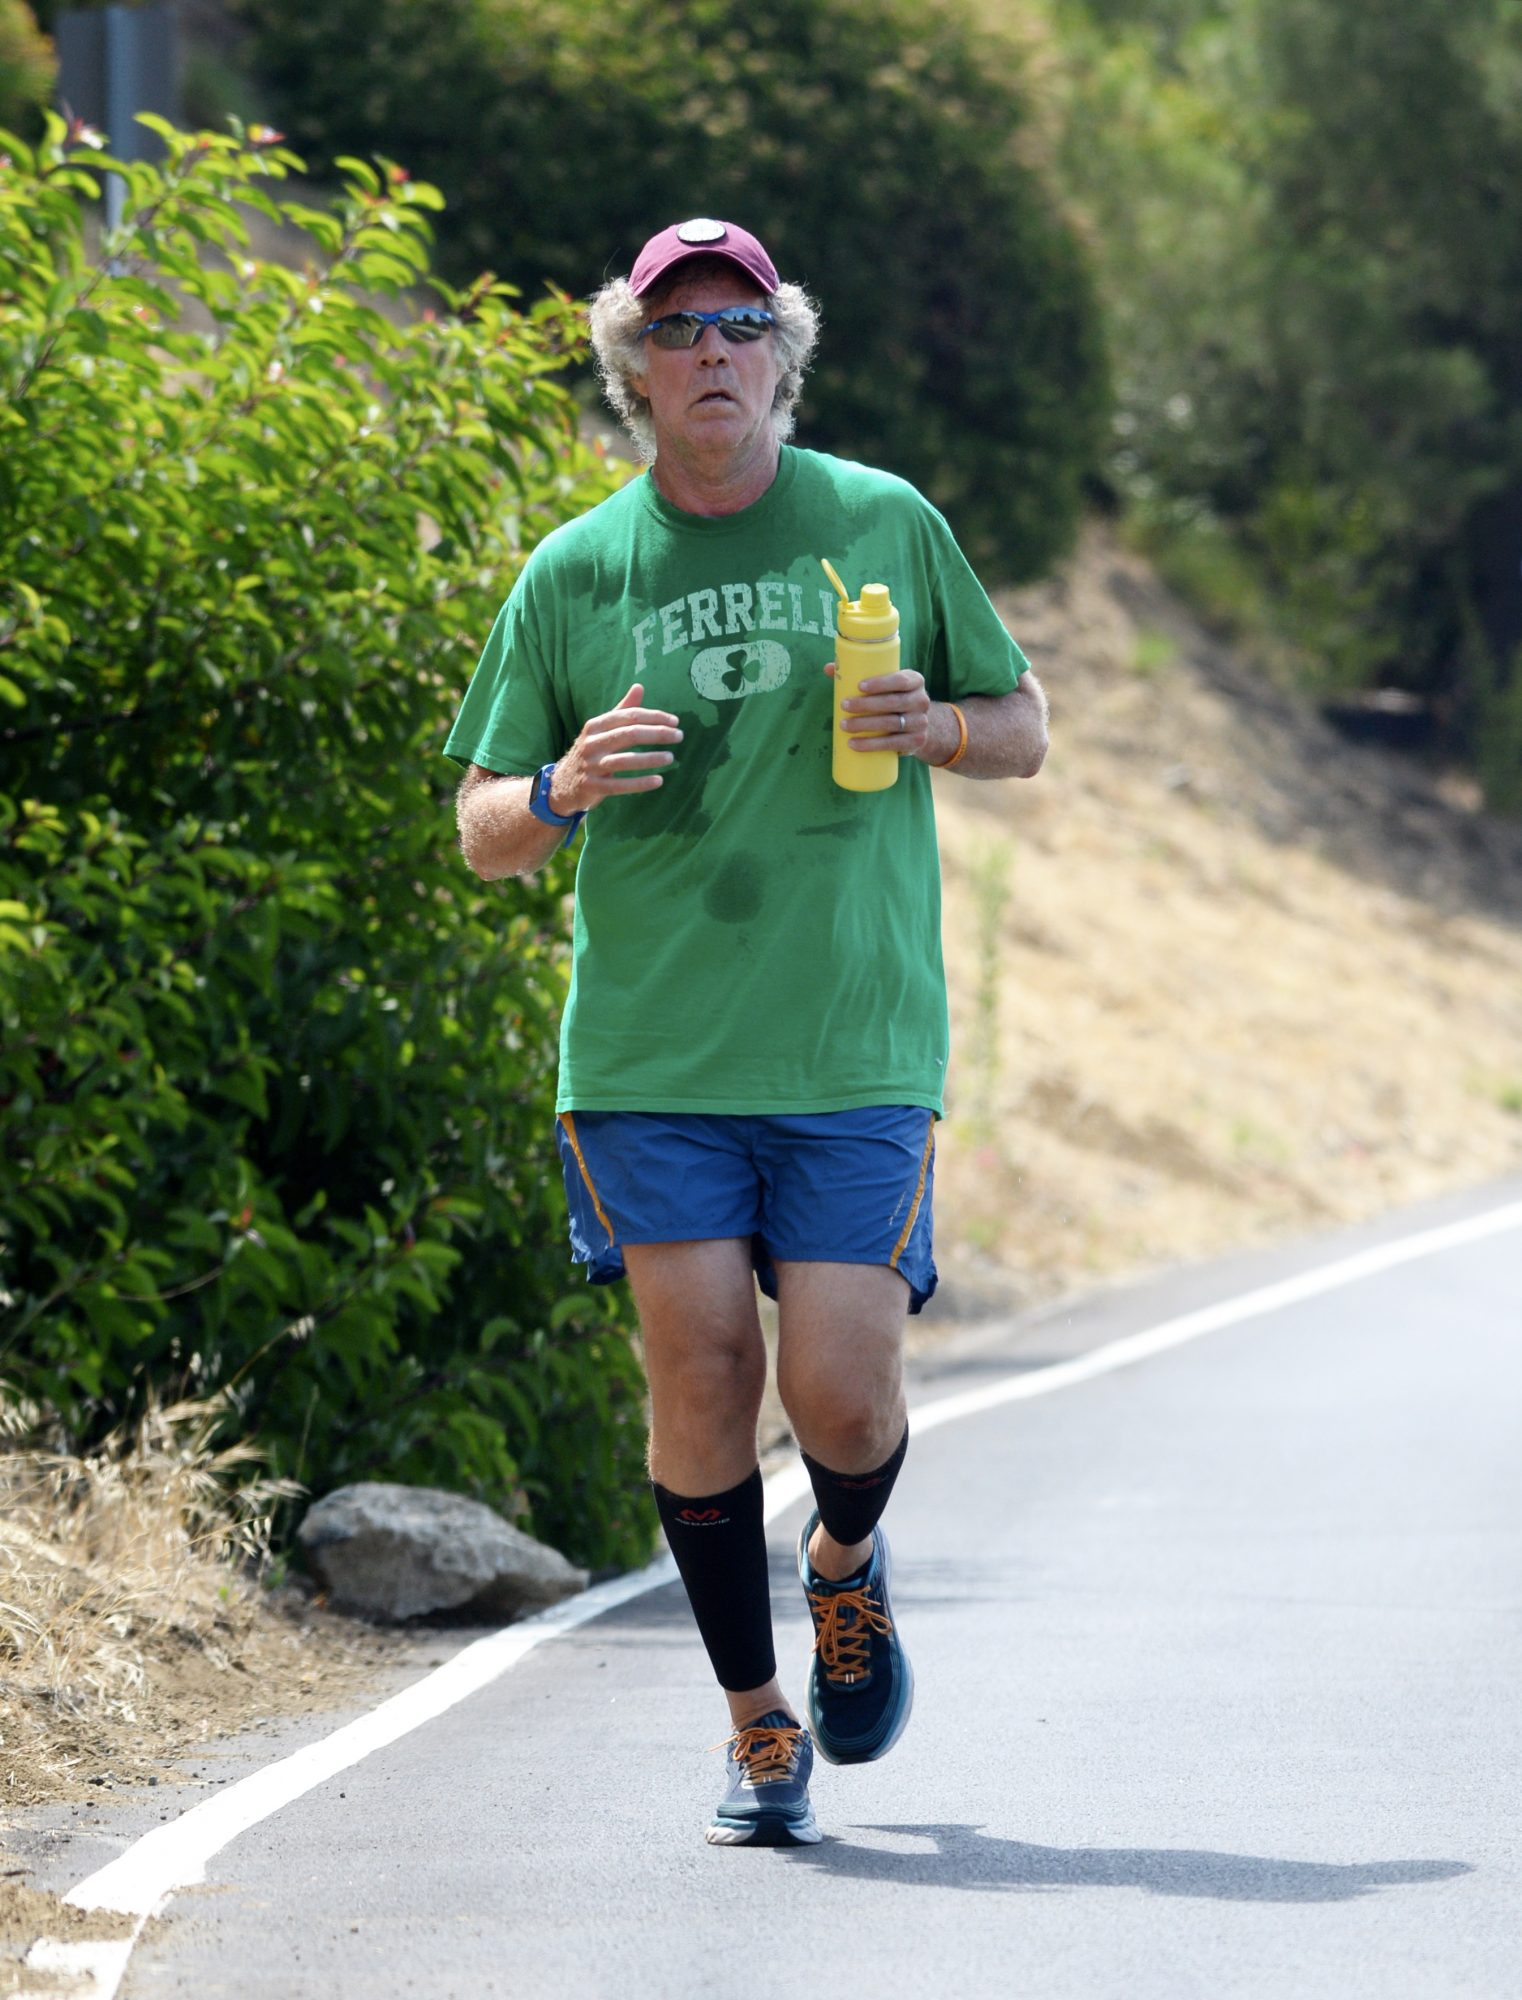 Will Ferrell goes for a Father's Day morning jog in a T-shirt with his name on it in Los Angeles.